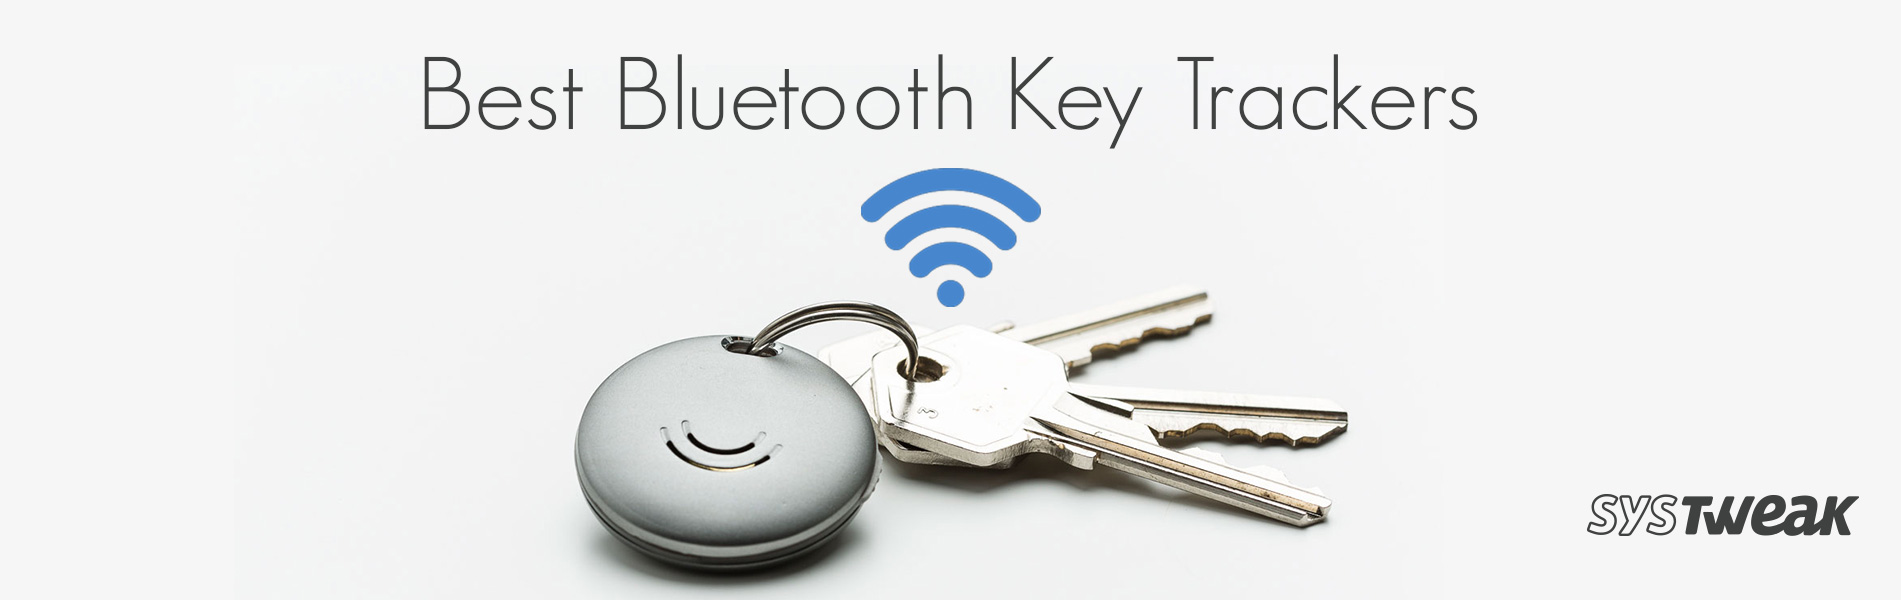 Best Bluetooth Key Trackers To Find What You Need